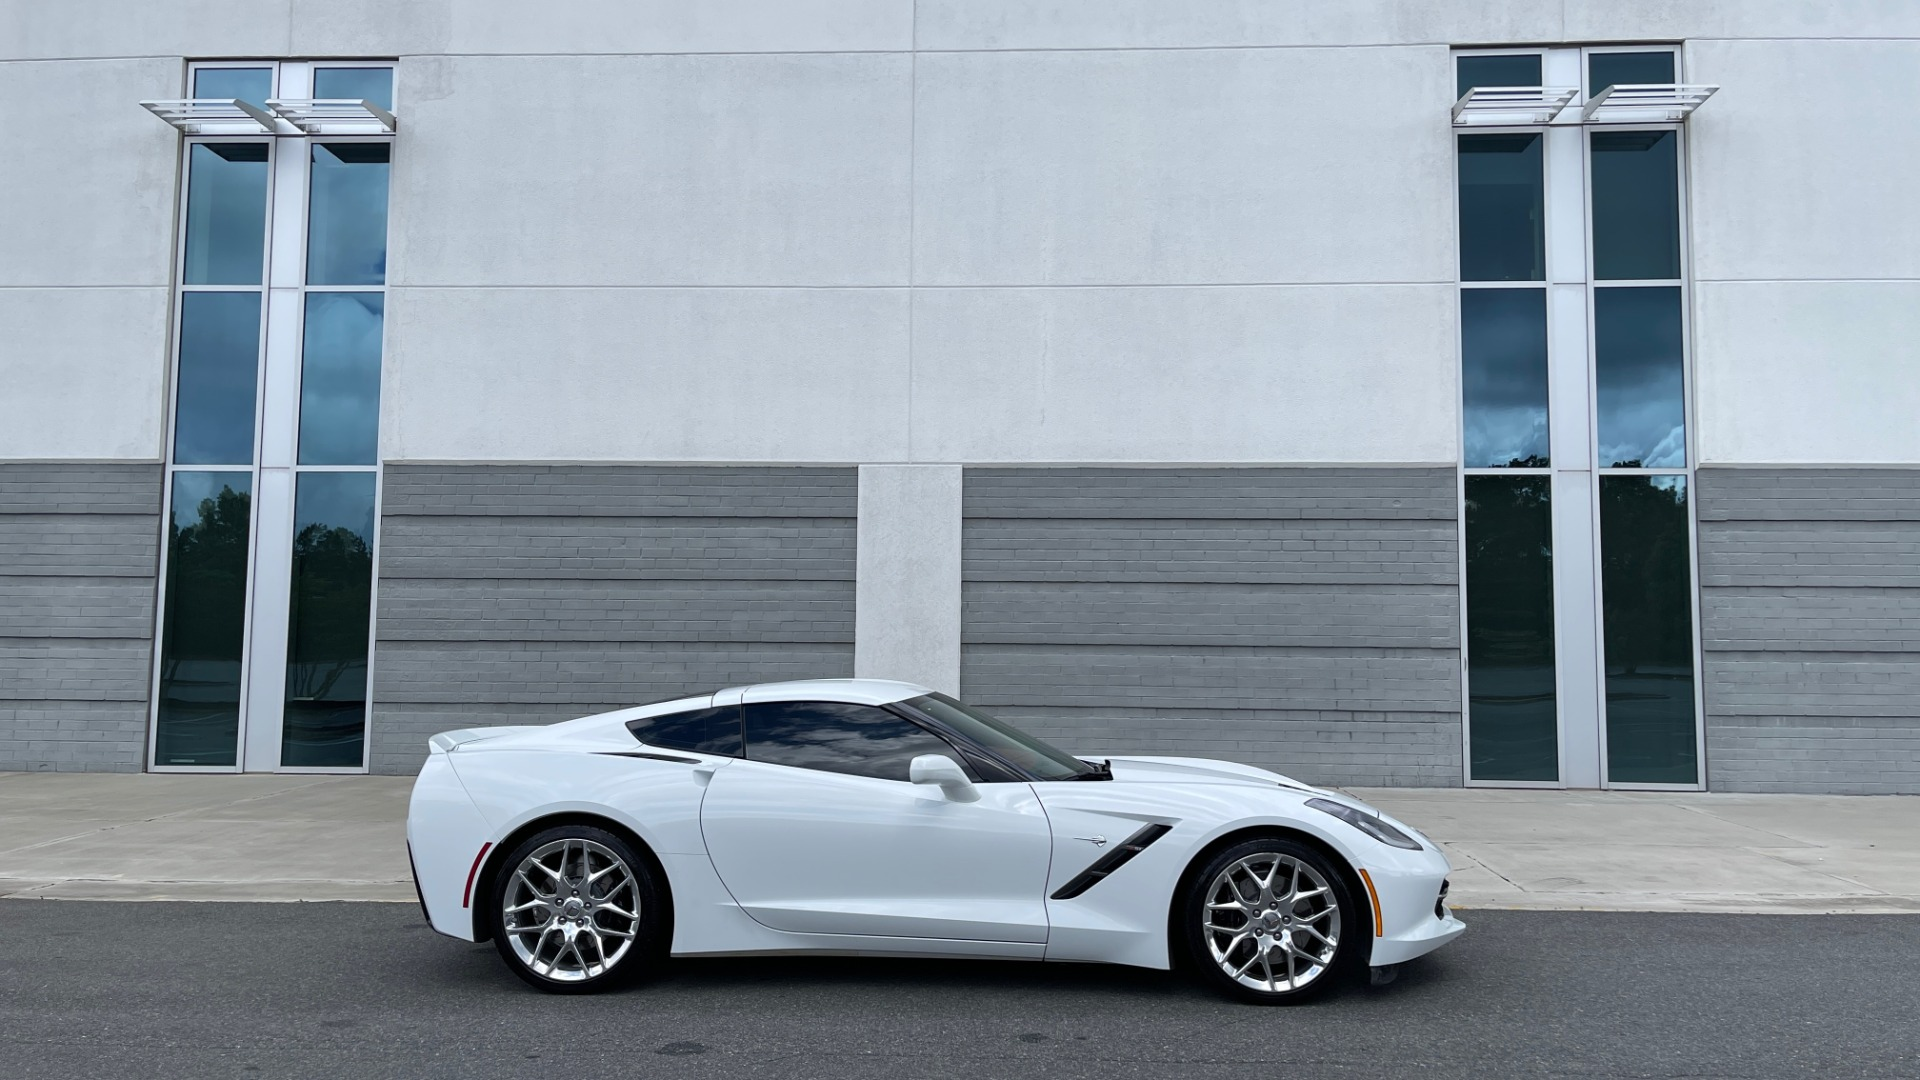 Used 2016 Chevrolet CORVETTE C7 STINGRAY COUPE Z51 3LT / NAV / PERF TRACTION MGMT / REARVIEW for sale Sold at Formula Imports in Charlotte NC 28227 7